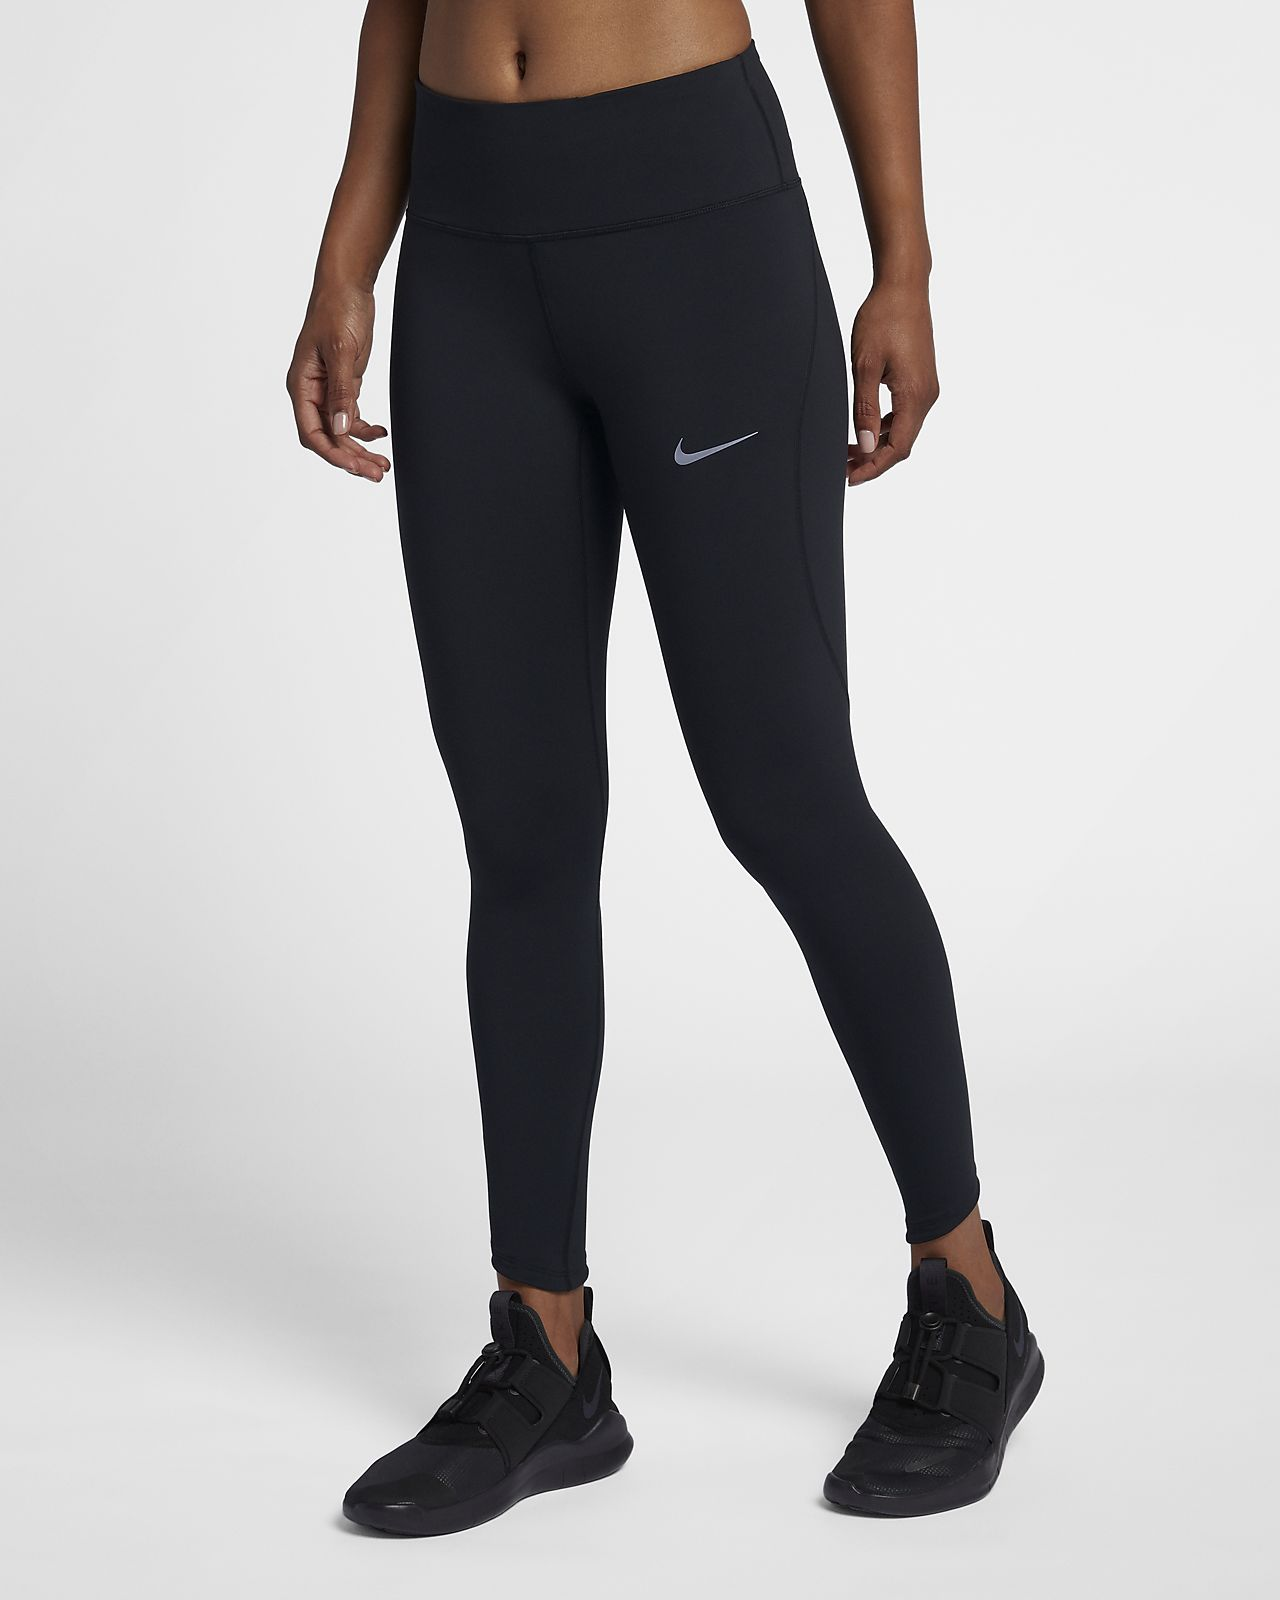 on sale 89223 efa90 Women s High-Rise 7 8 Running Tights. Nike Epic Lux